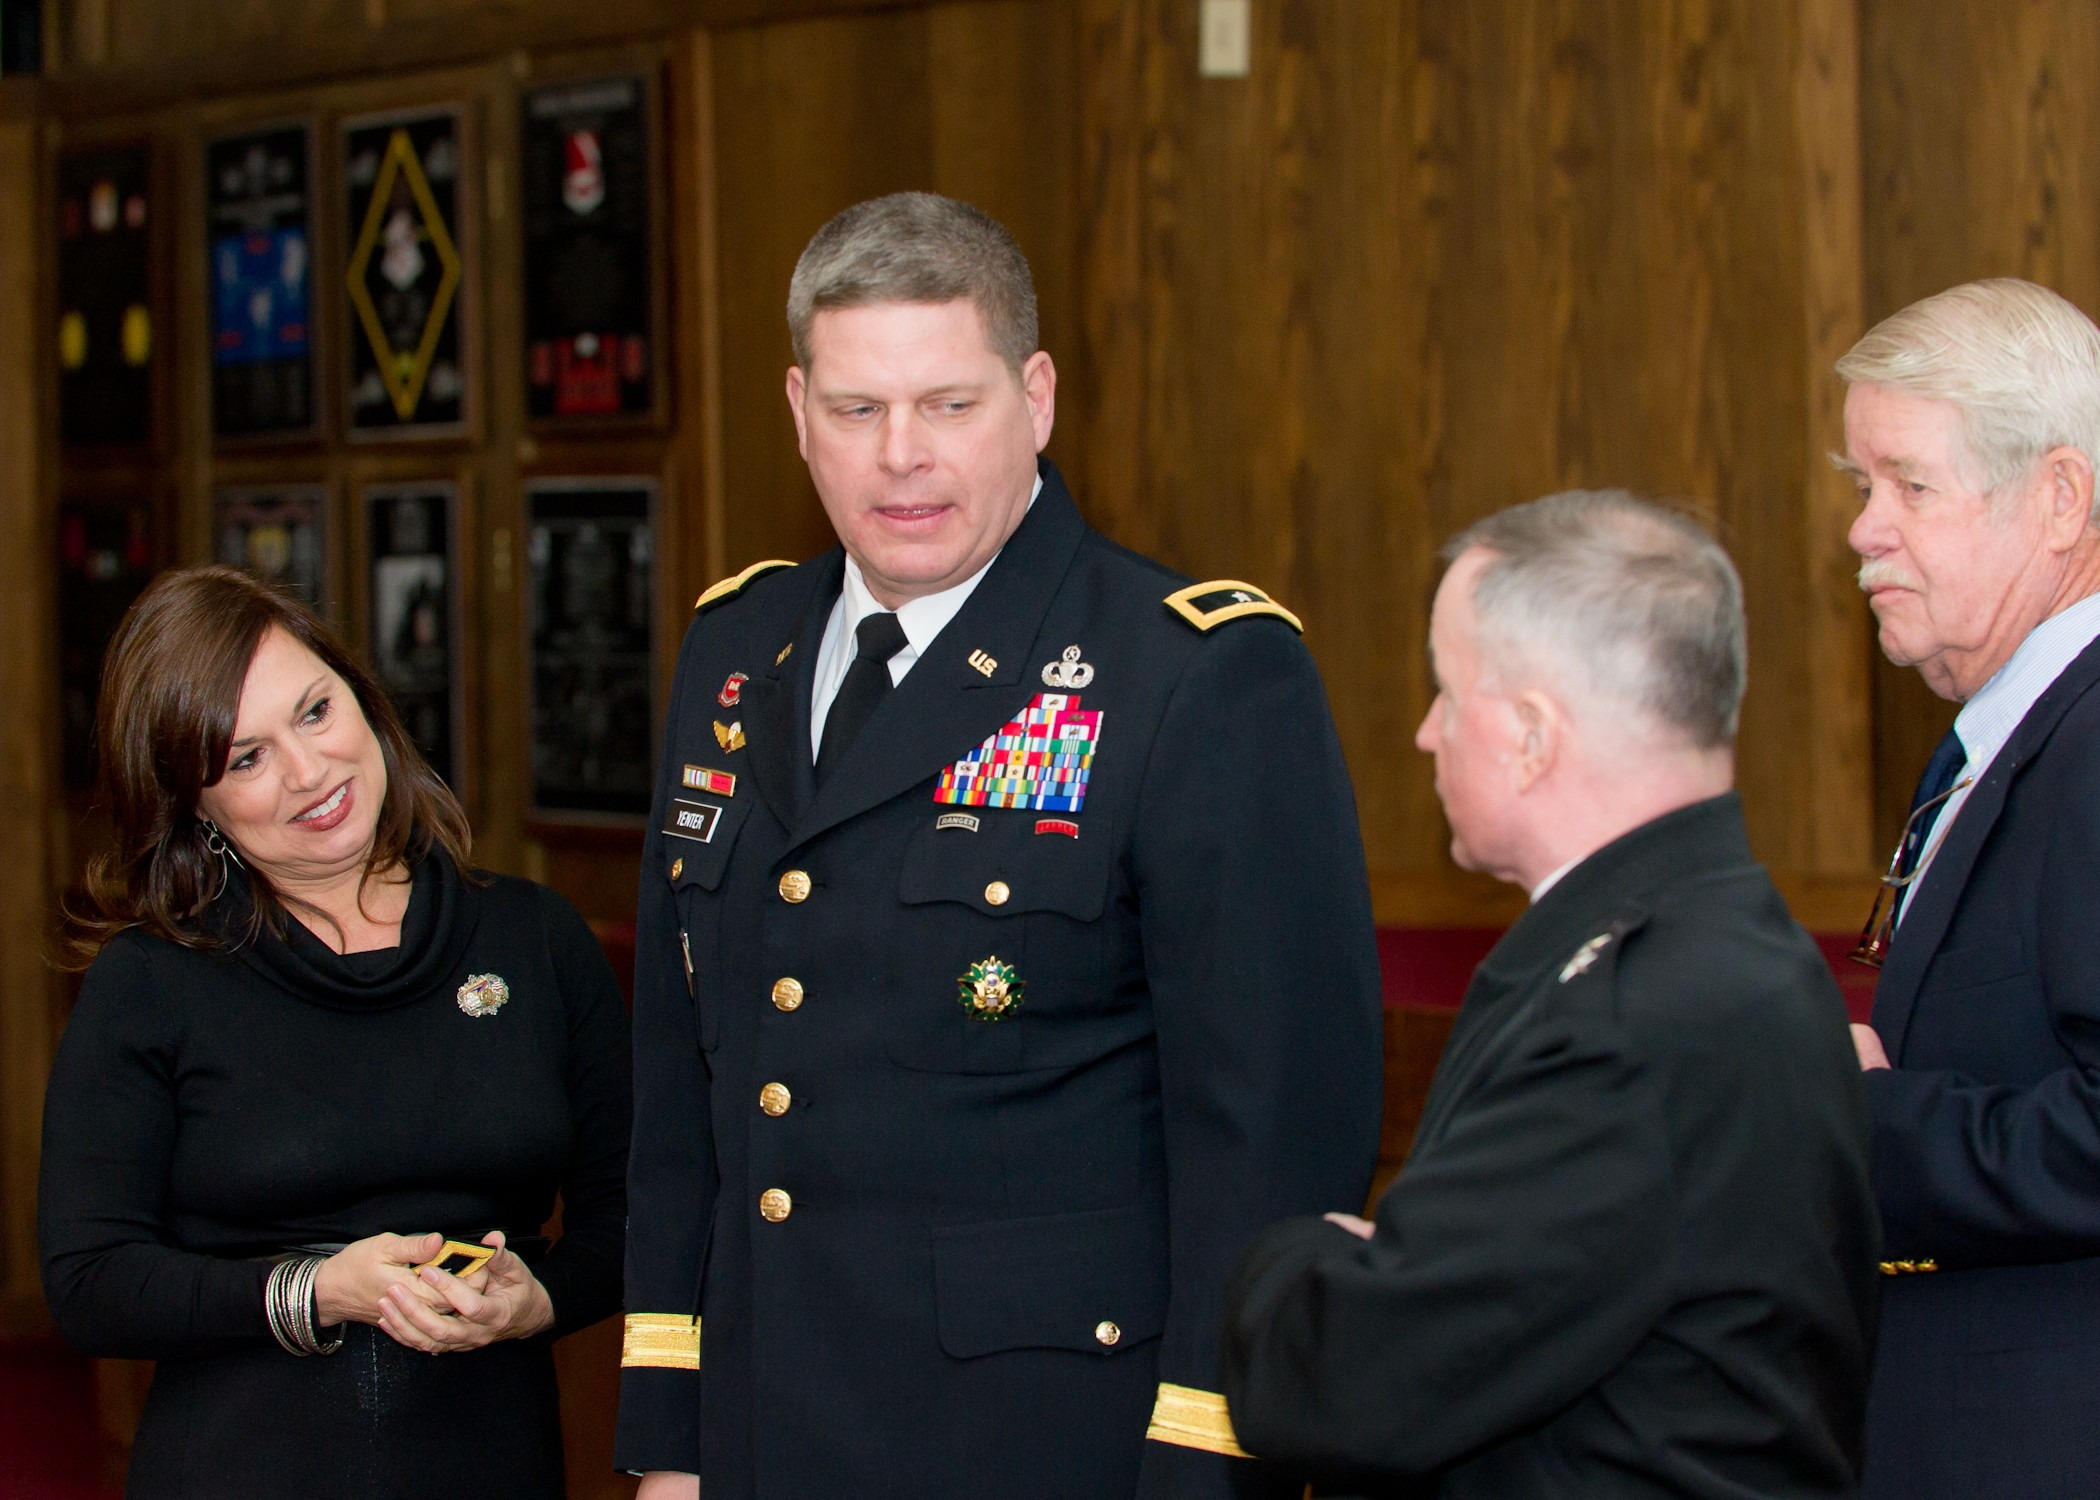 Army General S Promotion Reflects Strength Of Family